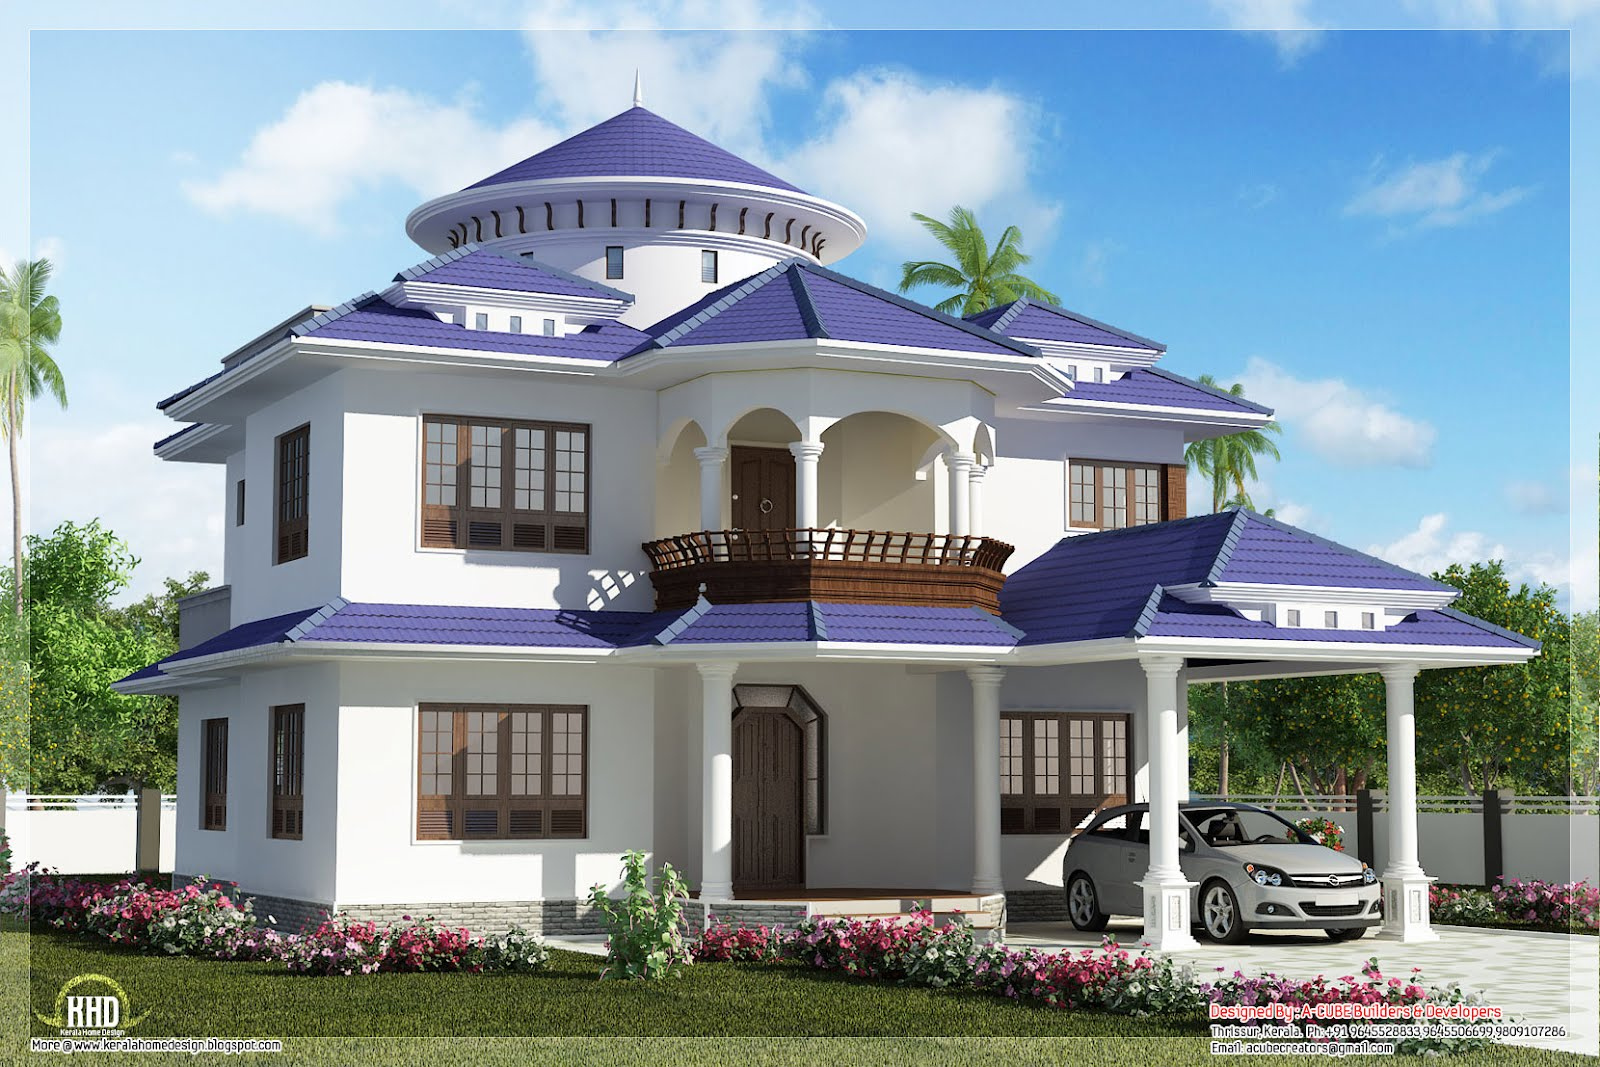 Top Dreamhouse Design 1600 x 1067 · 320 kB · jpeg